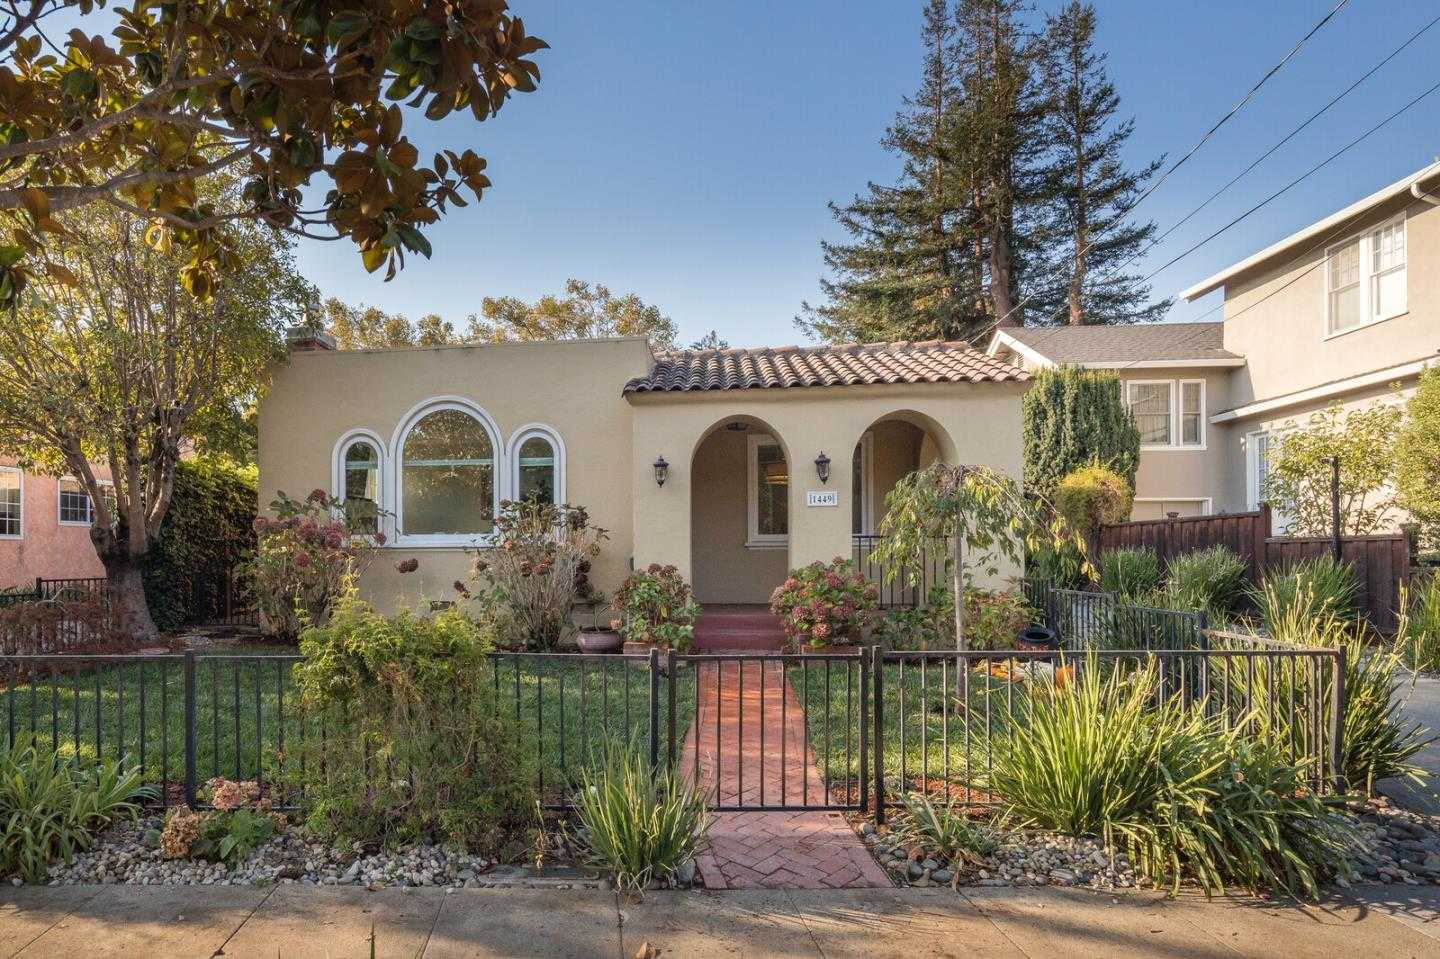 $1,399,000 - 2Br/1Ba -  for Sale in Burlingame